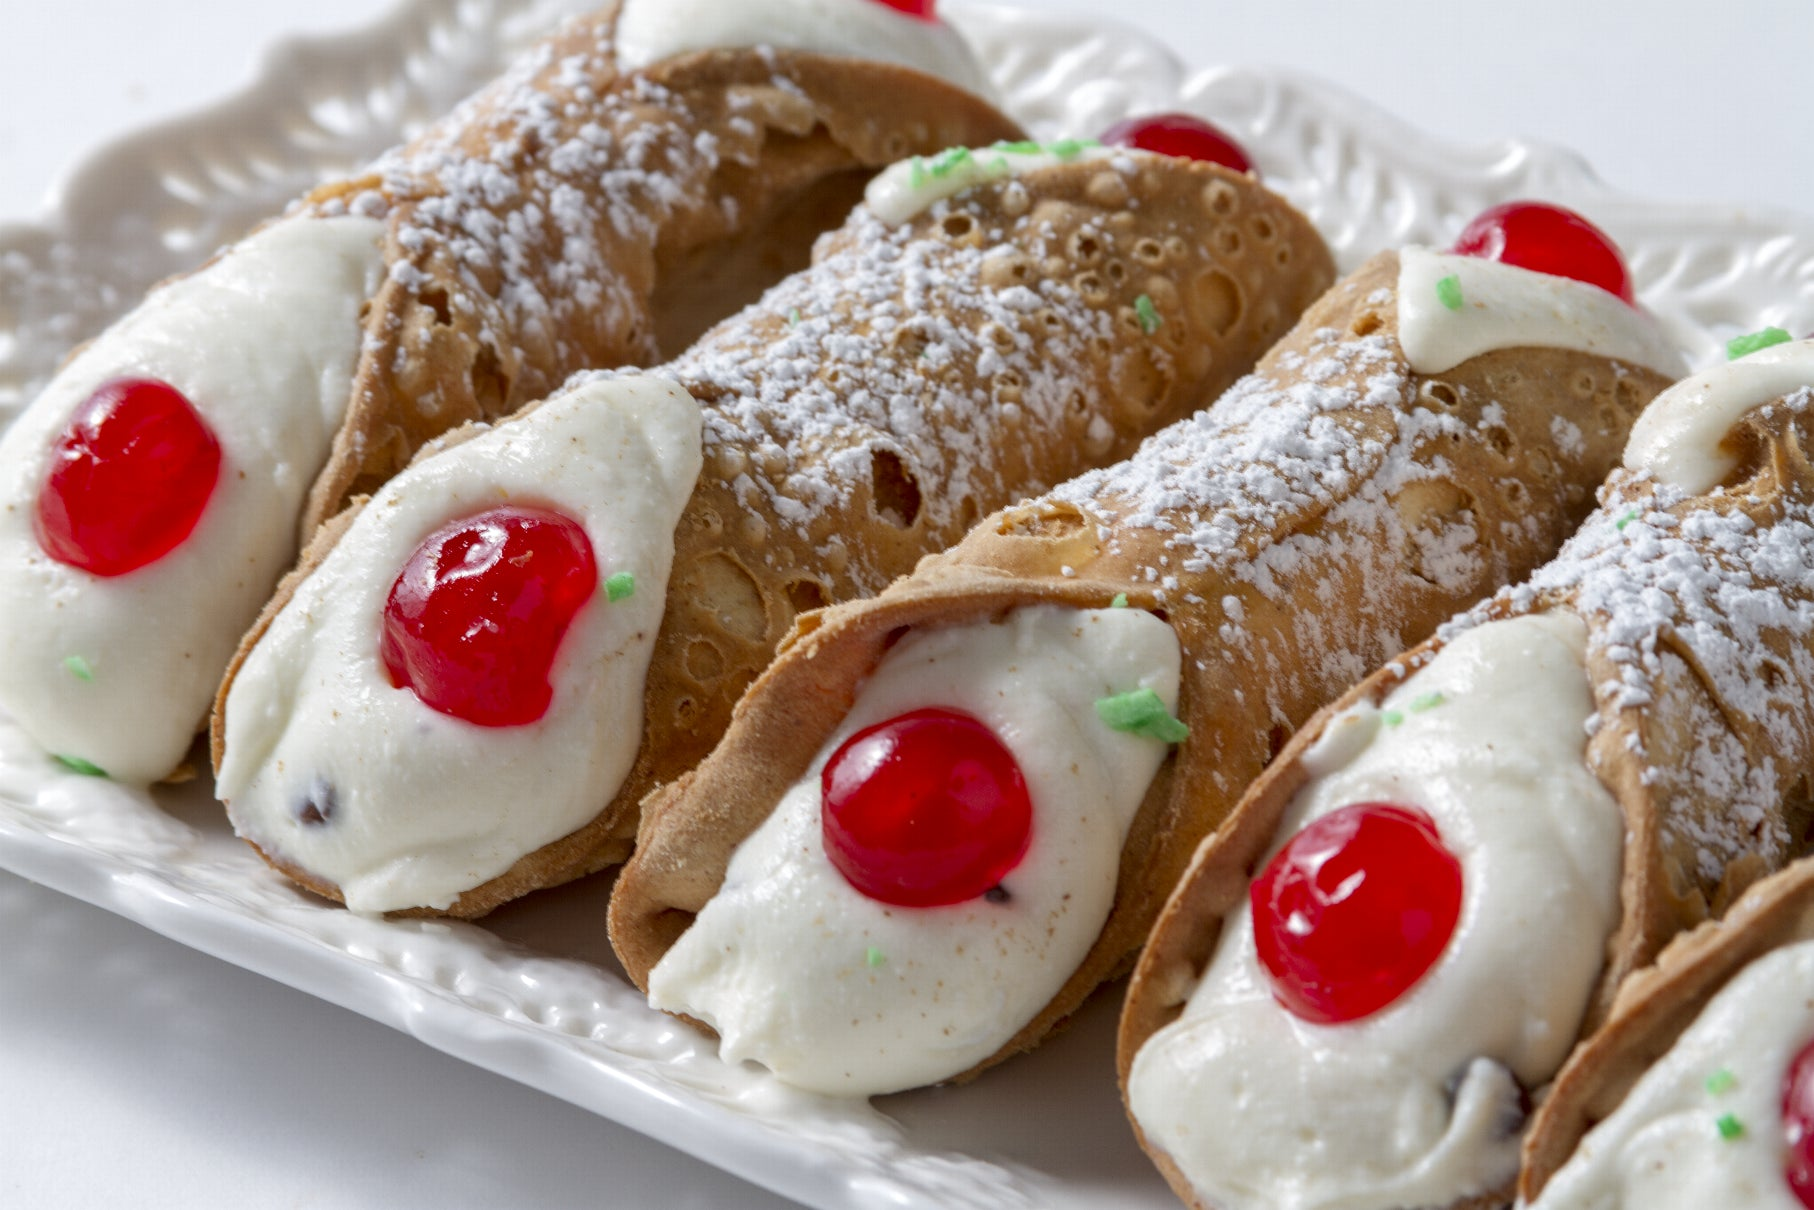 Large Cannoli - 6 per order